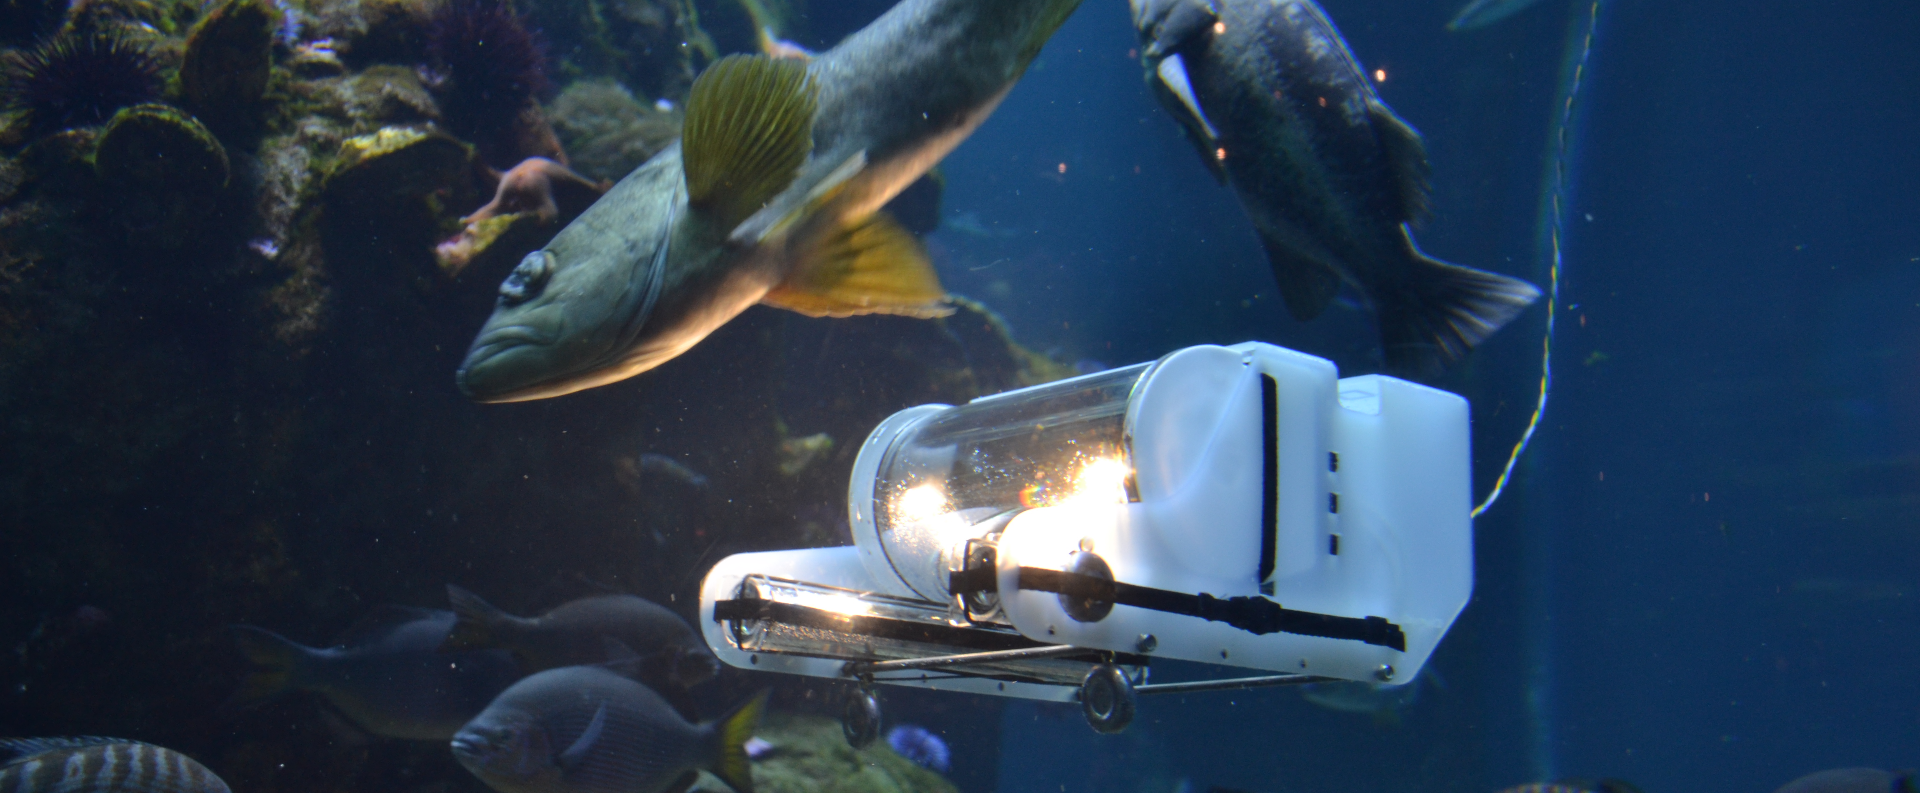 OpenROV used in GEECs programs